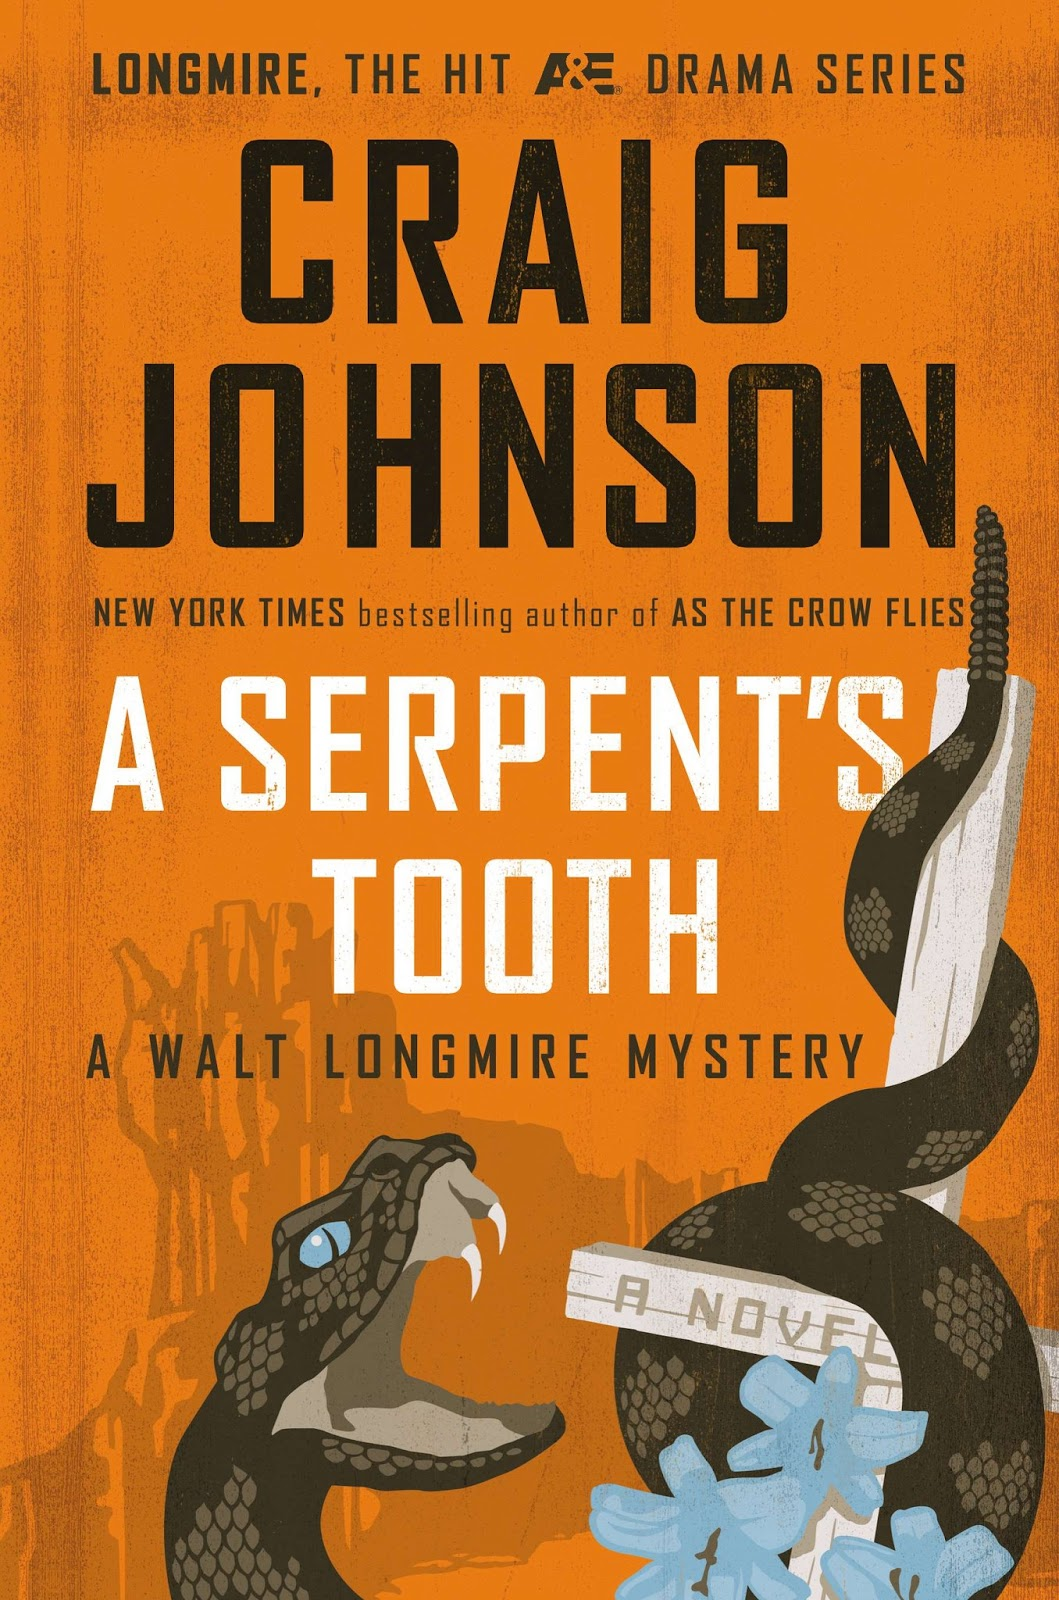 Walt Longmire Series #09 - A Serpent's Tooth Part 02.mp3 - Craig Johnson